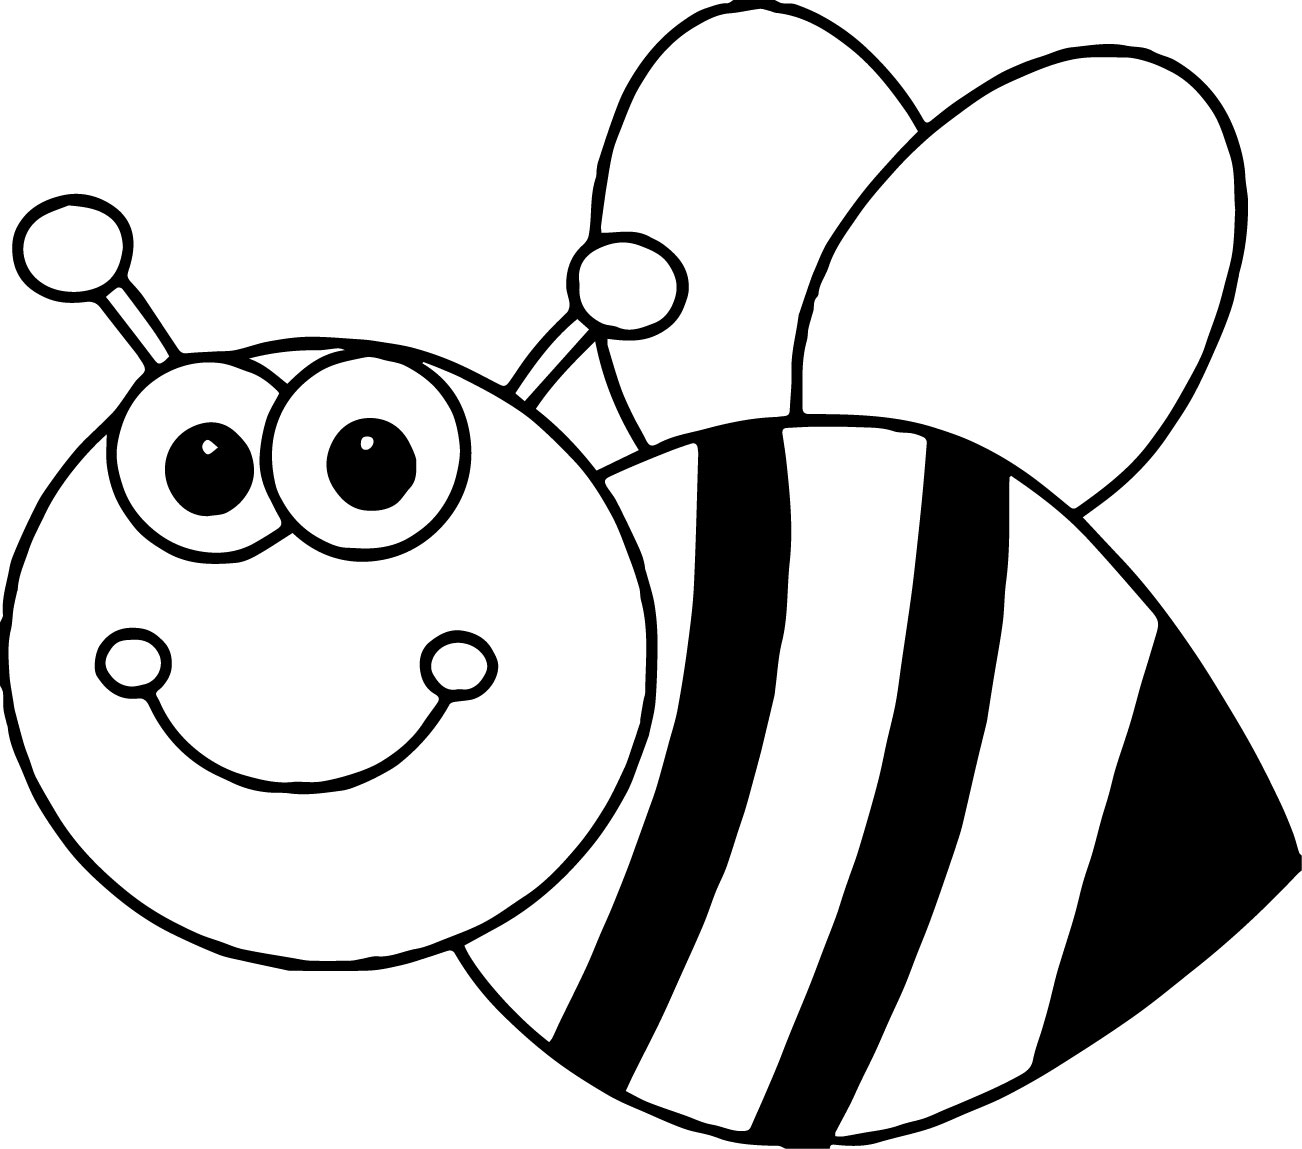 printable bumble bee coloring page free printable bumble bee coloring pages for kids printable bumble coloring page bee